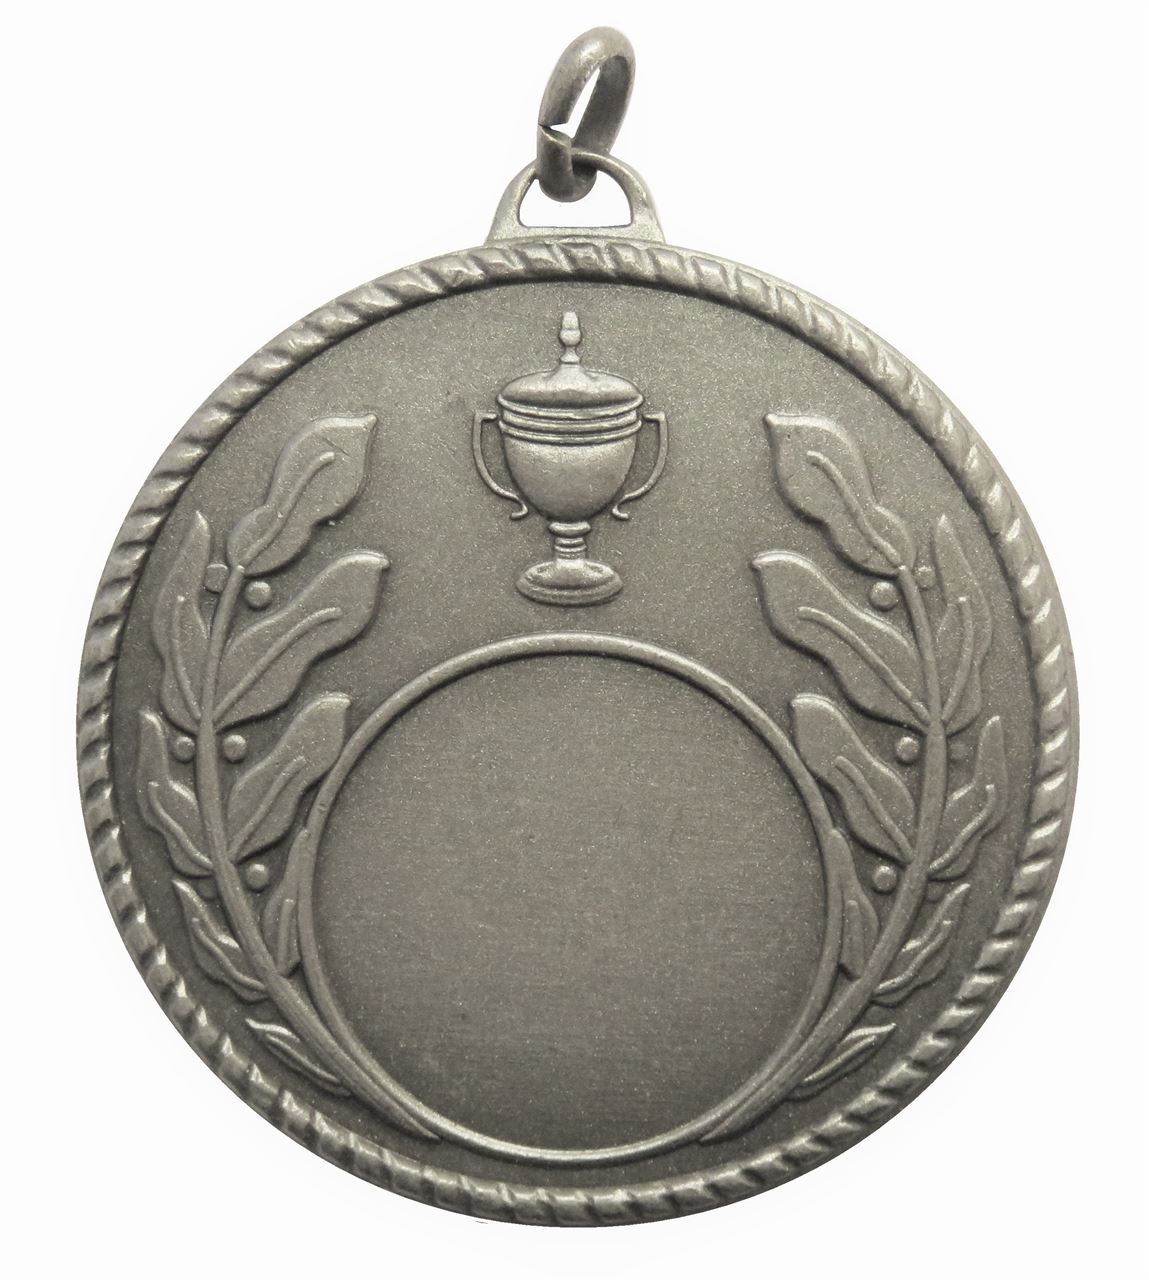 Silver Quality Laurel & Cup Medal (size: 50mm) - 5804E